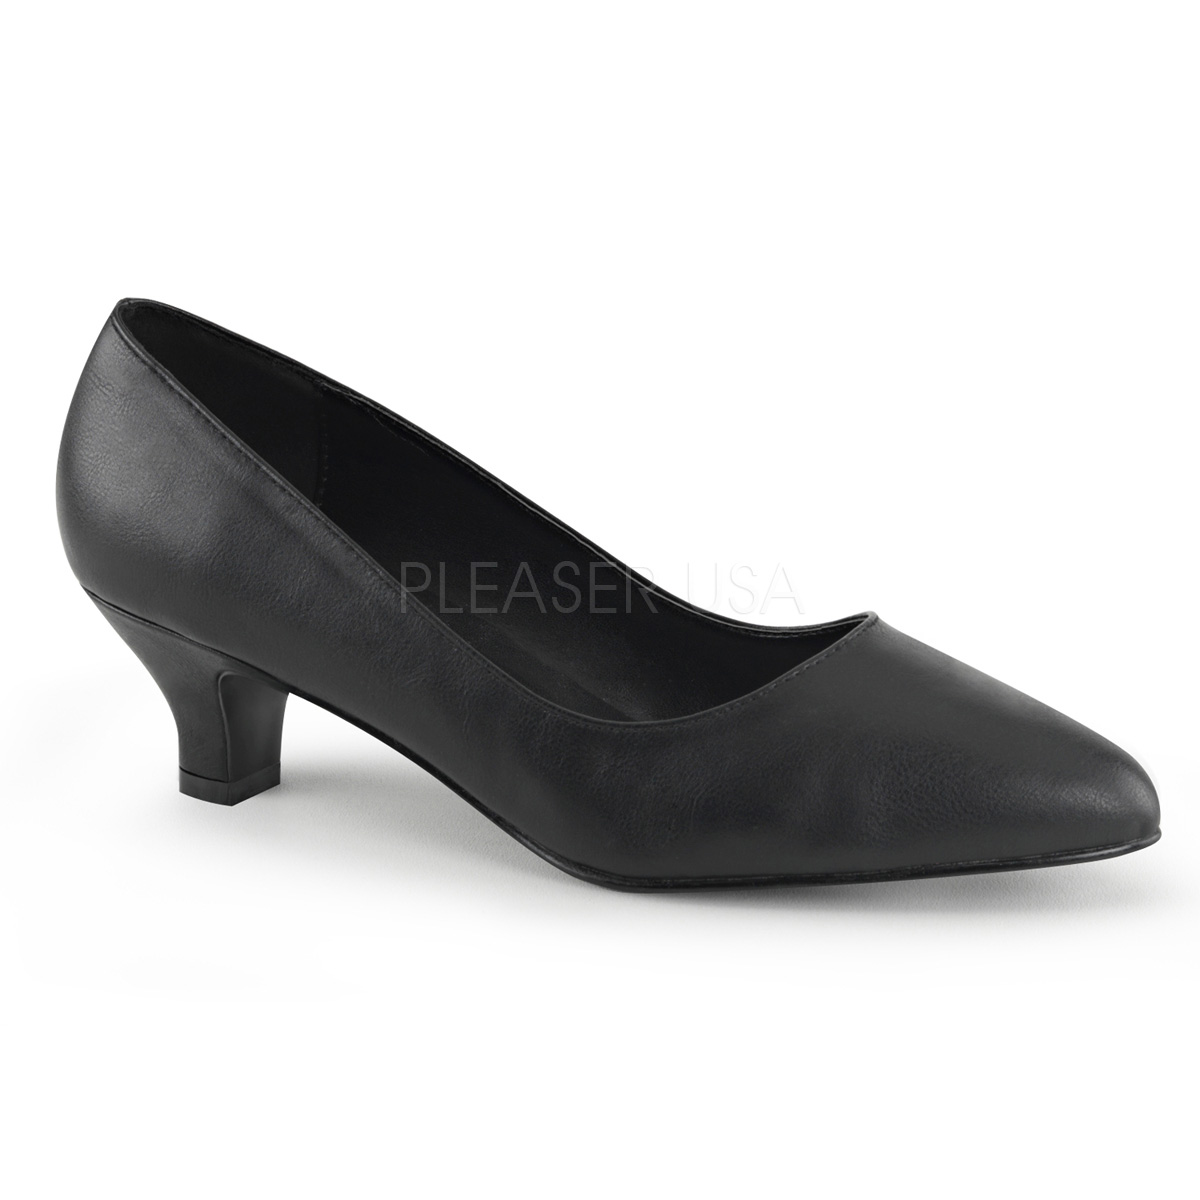 2 Inch Block Heel Classic Pump - Click Image to Close